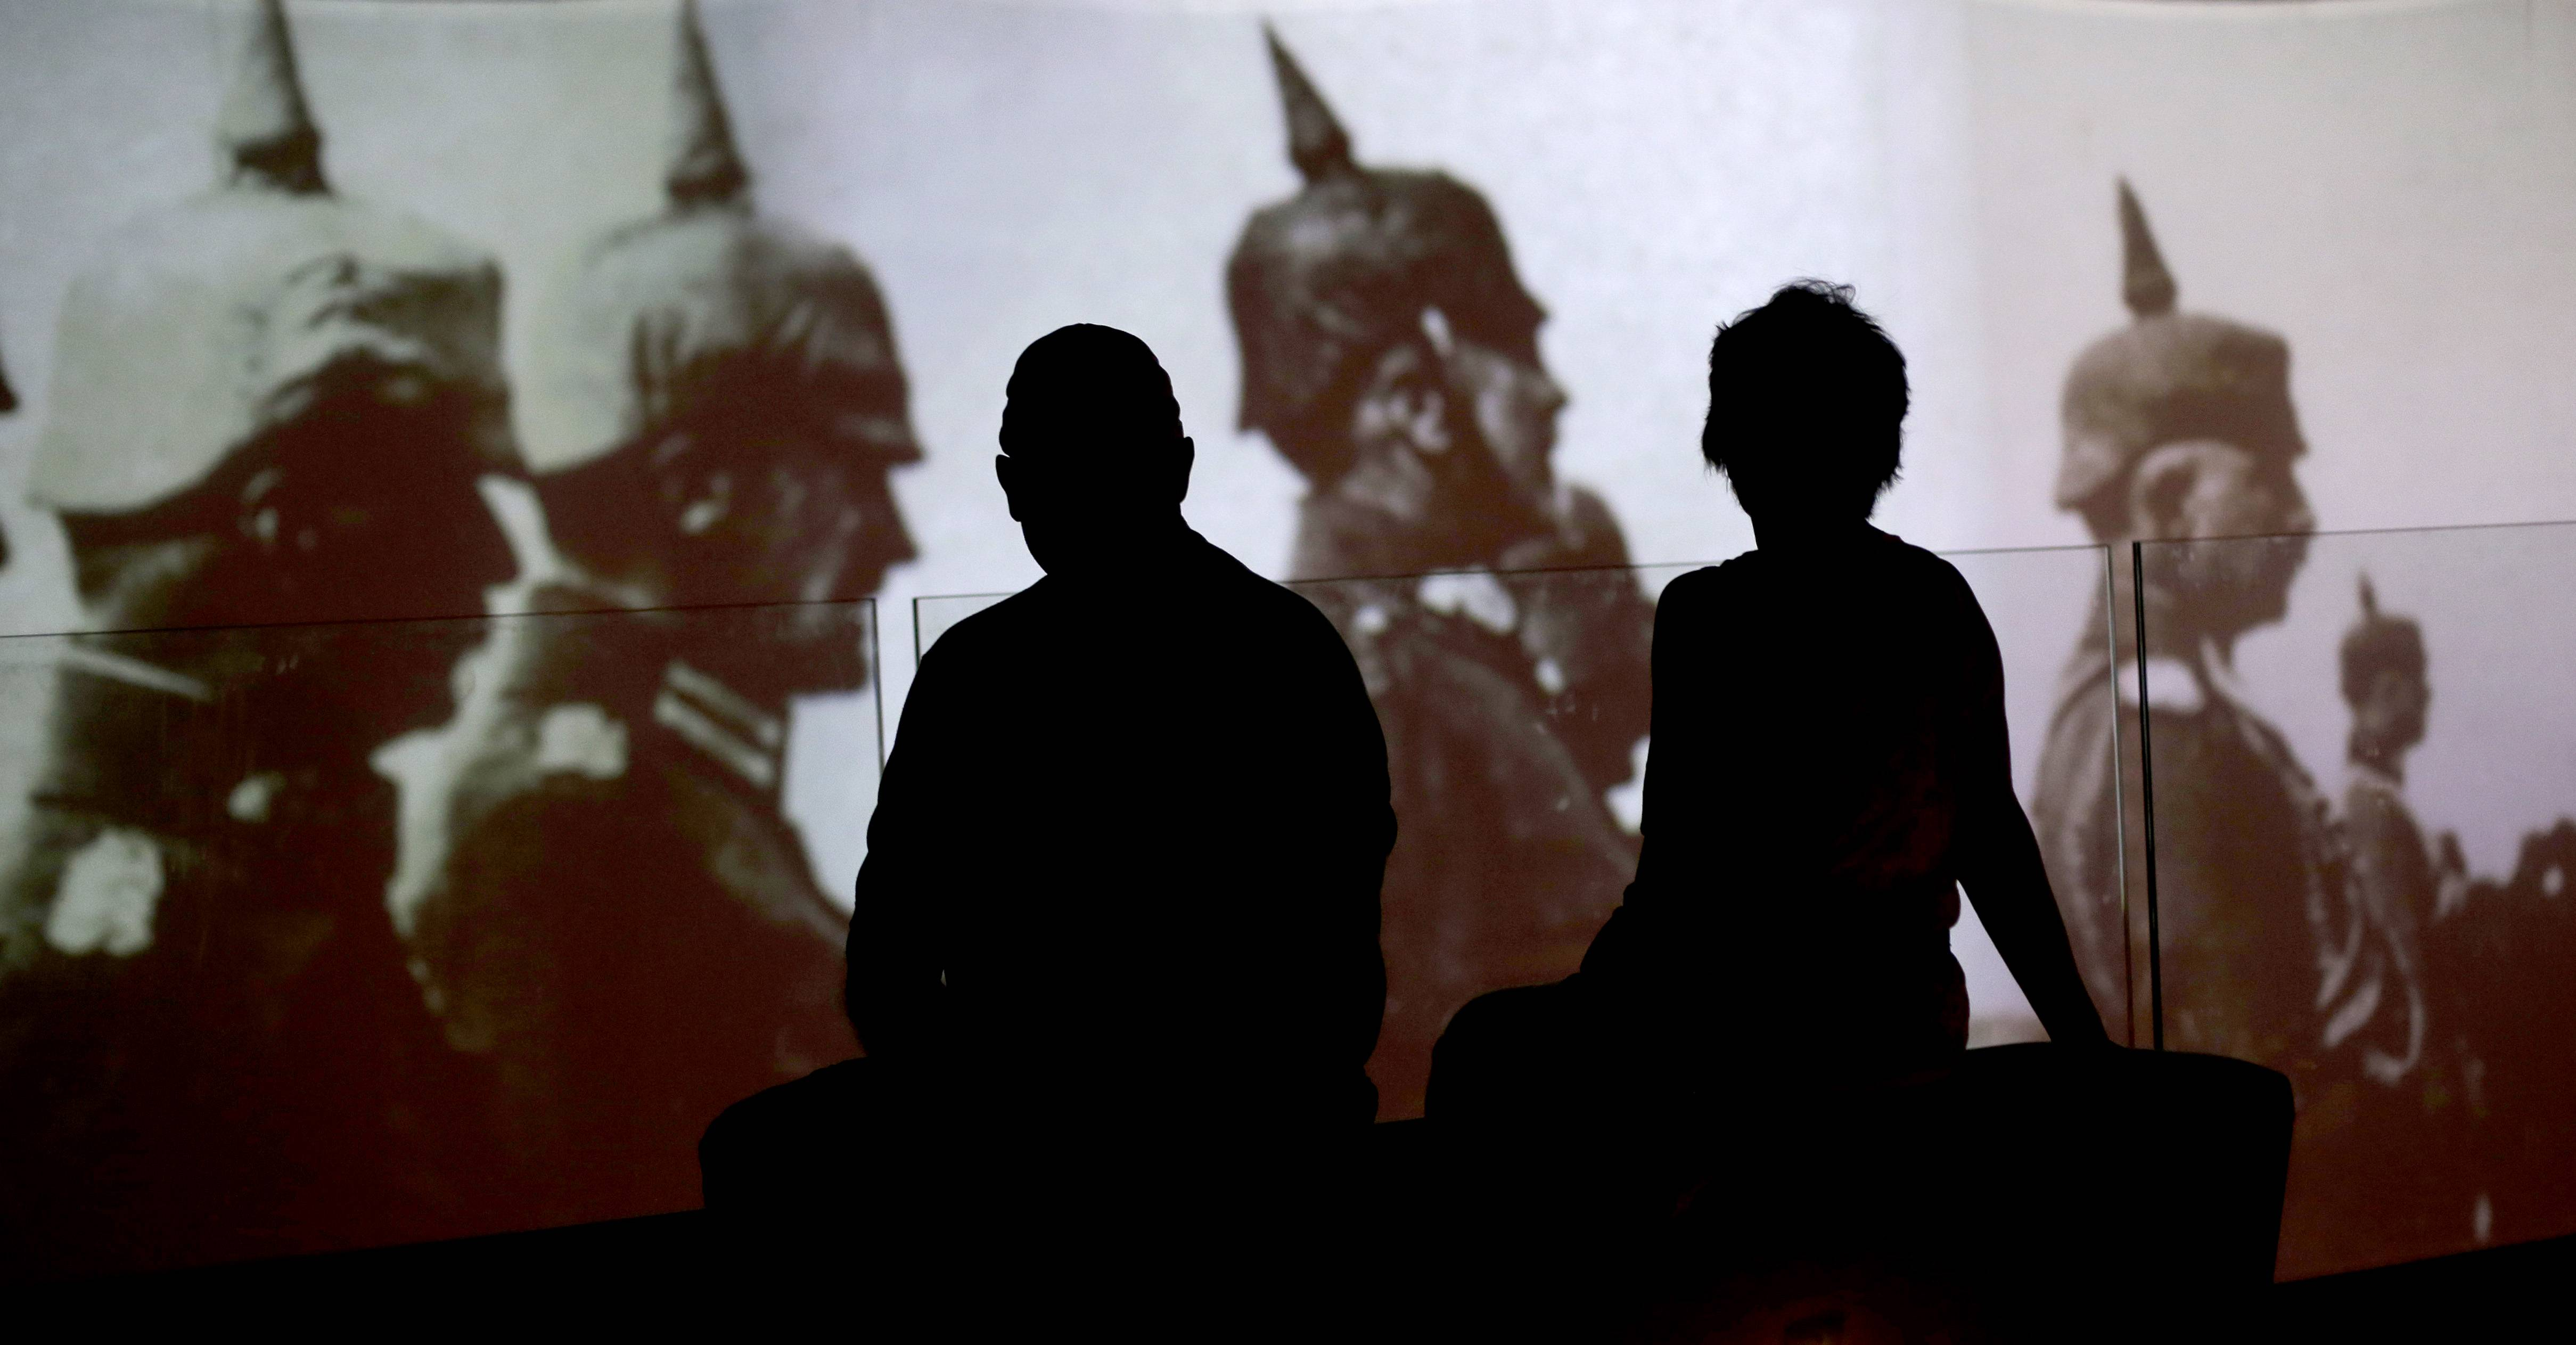 Visitors watch a video detailing the events leading up to the United States' entrance into the war at the National World War I Museum.